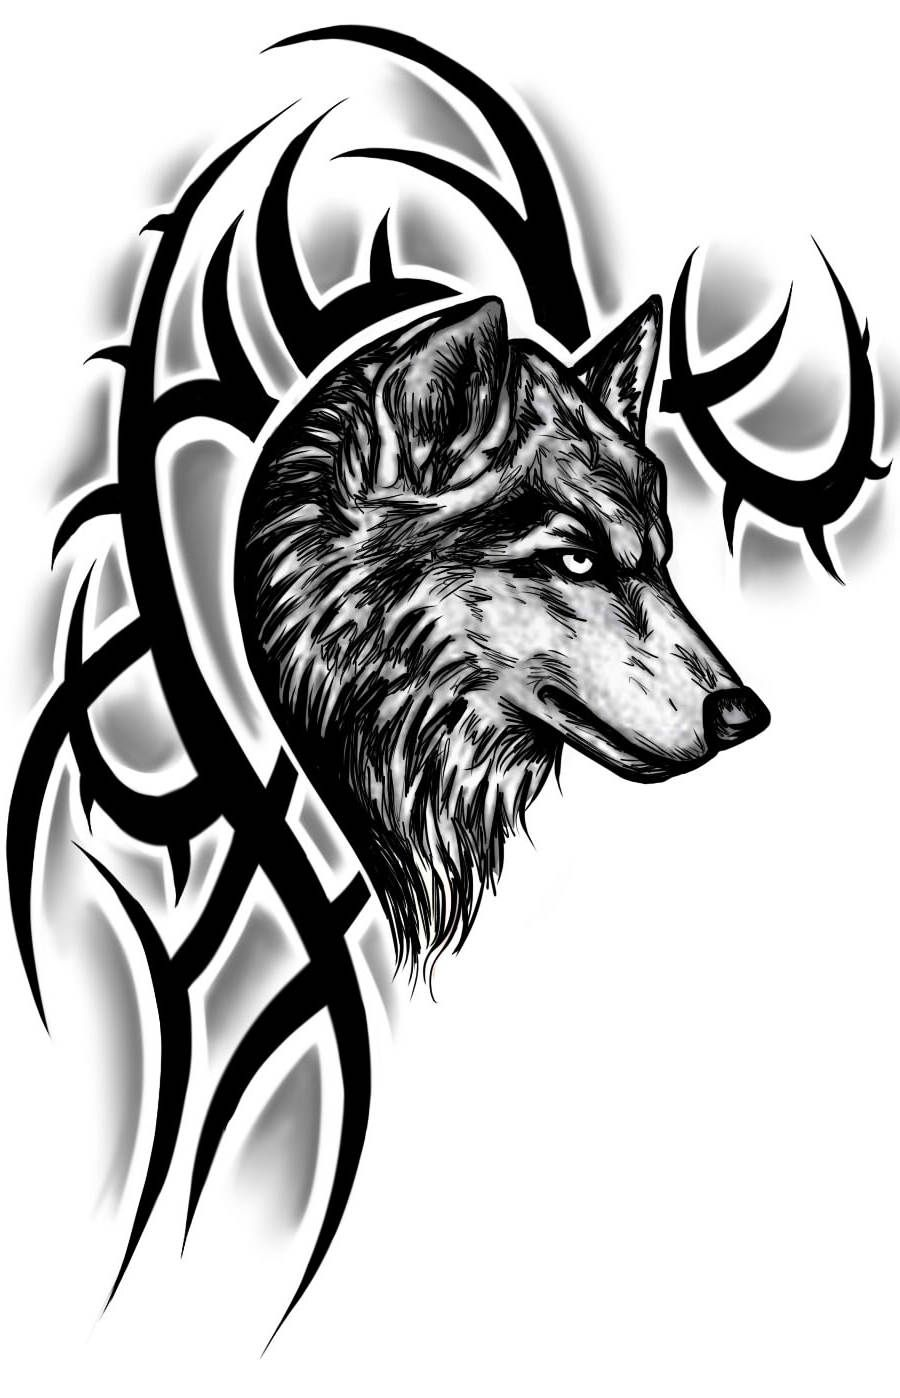 Pin By Sharon Lamson On Wolves Tribal Wolf Tattoo Wolf Tattoo Design Wolf Tattoos Men